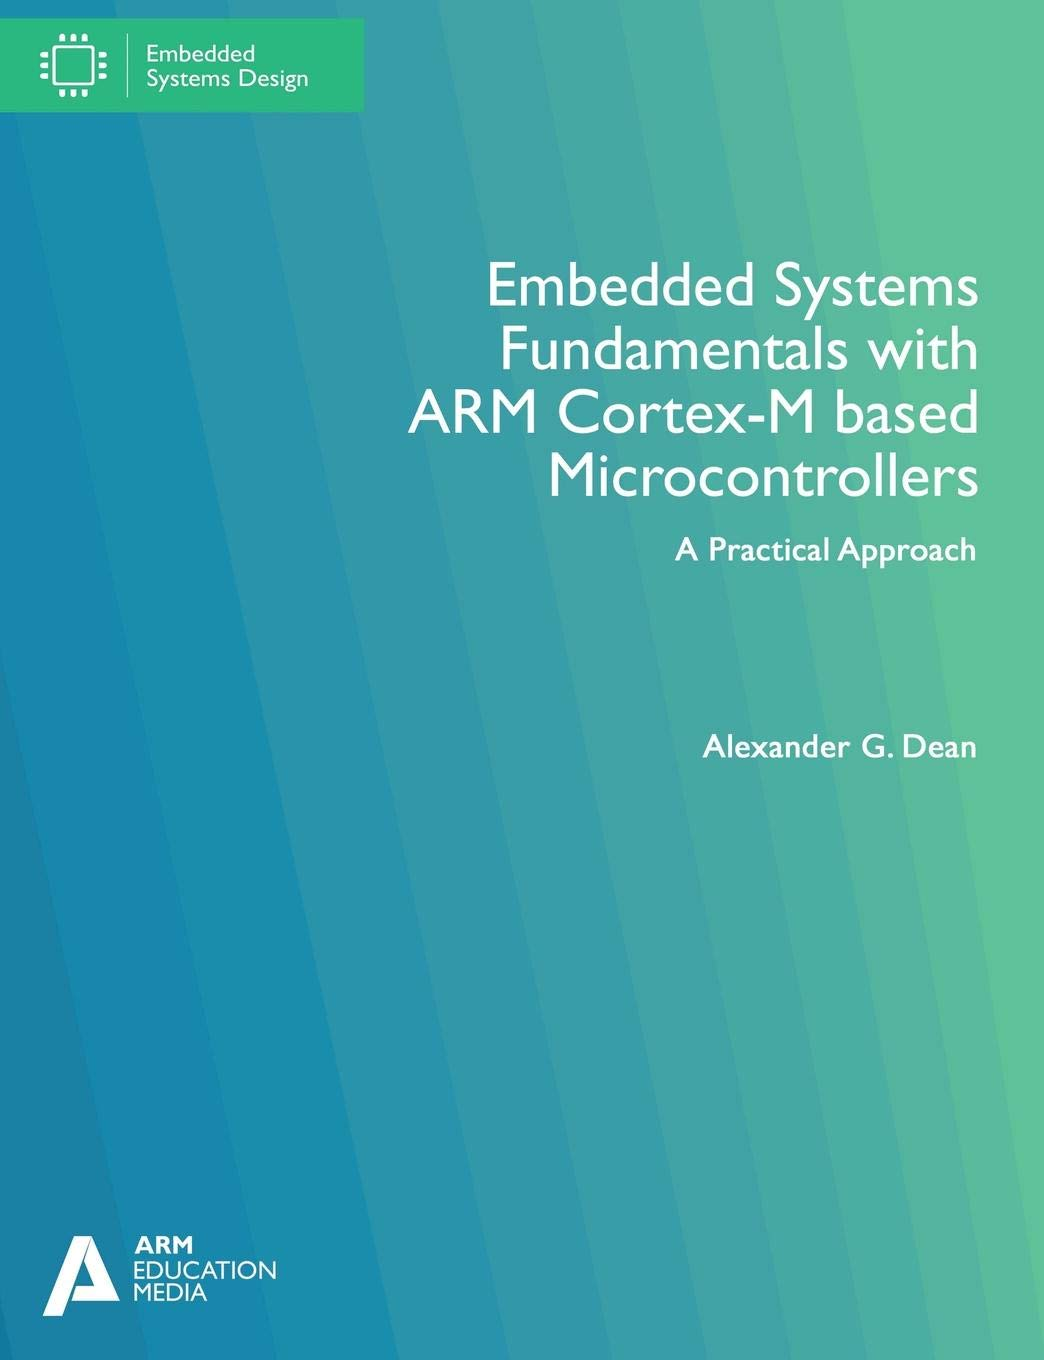 Embedded Systems Fundamentals With Arm Cortex M Based Watchdog Timers For Multitasking Microcontrollers A Practical Approach Alexander G Dean 9781911531036 Books